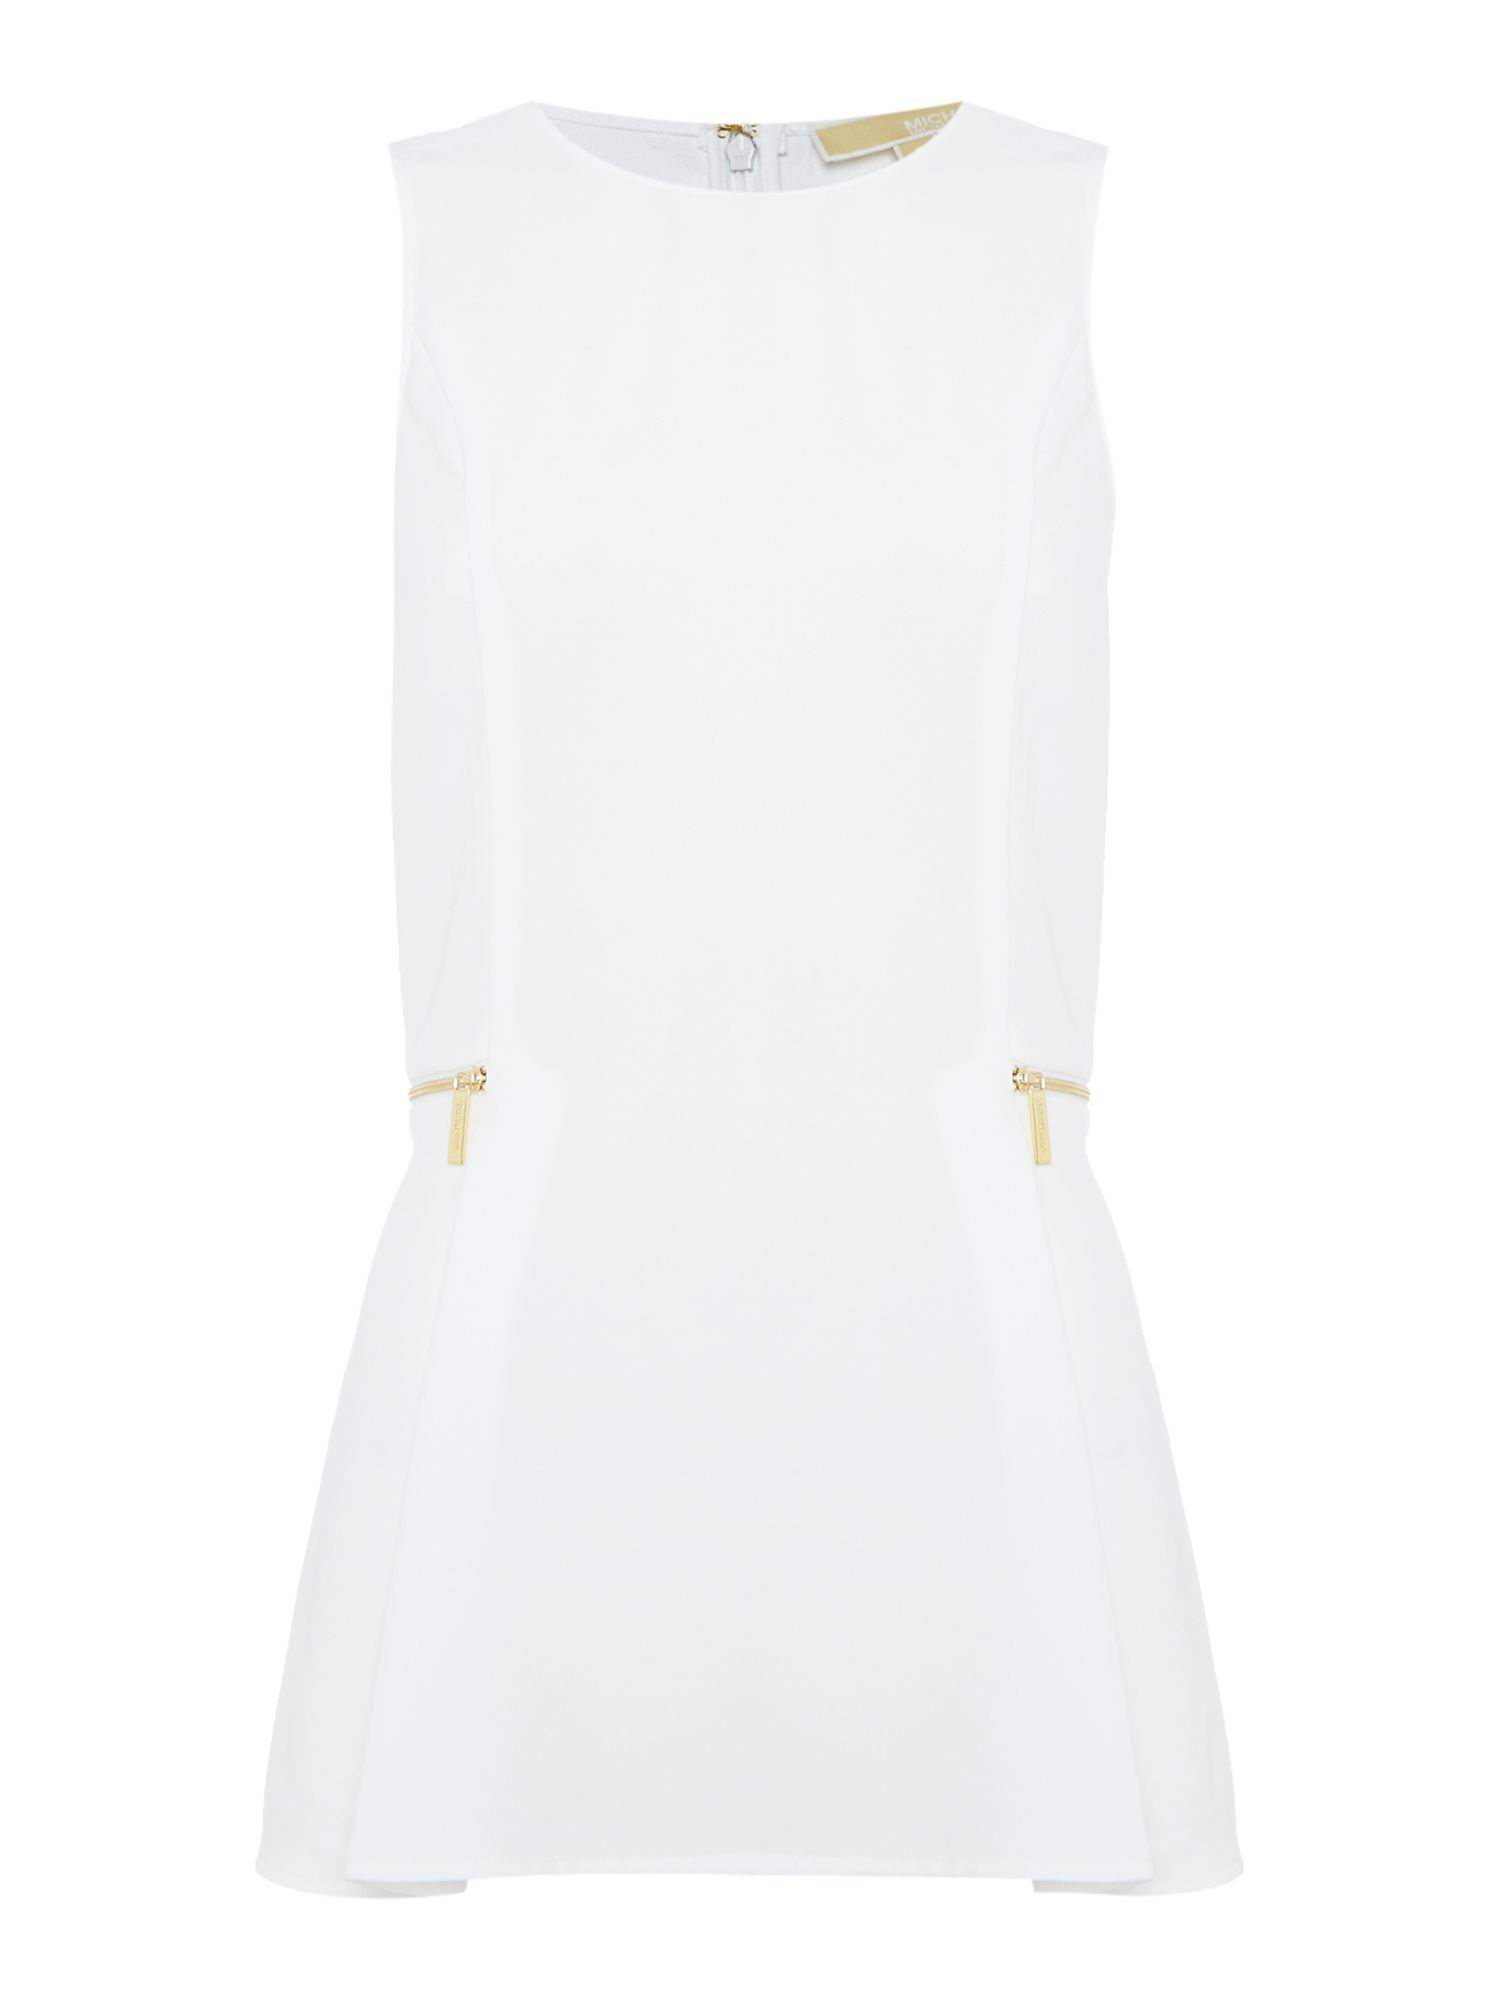 Michael Kors Sleeveless Zipper Waist Top, White